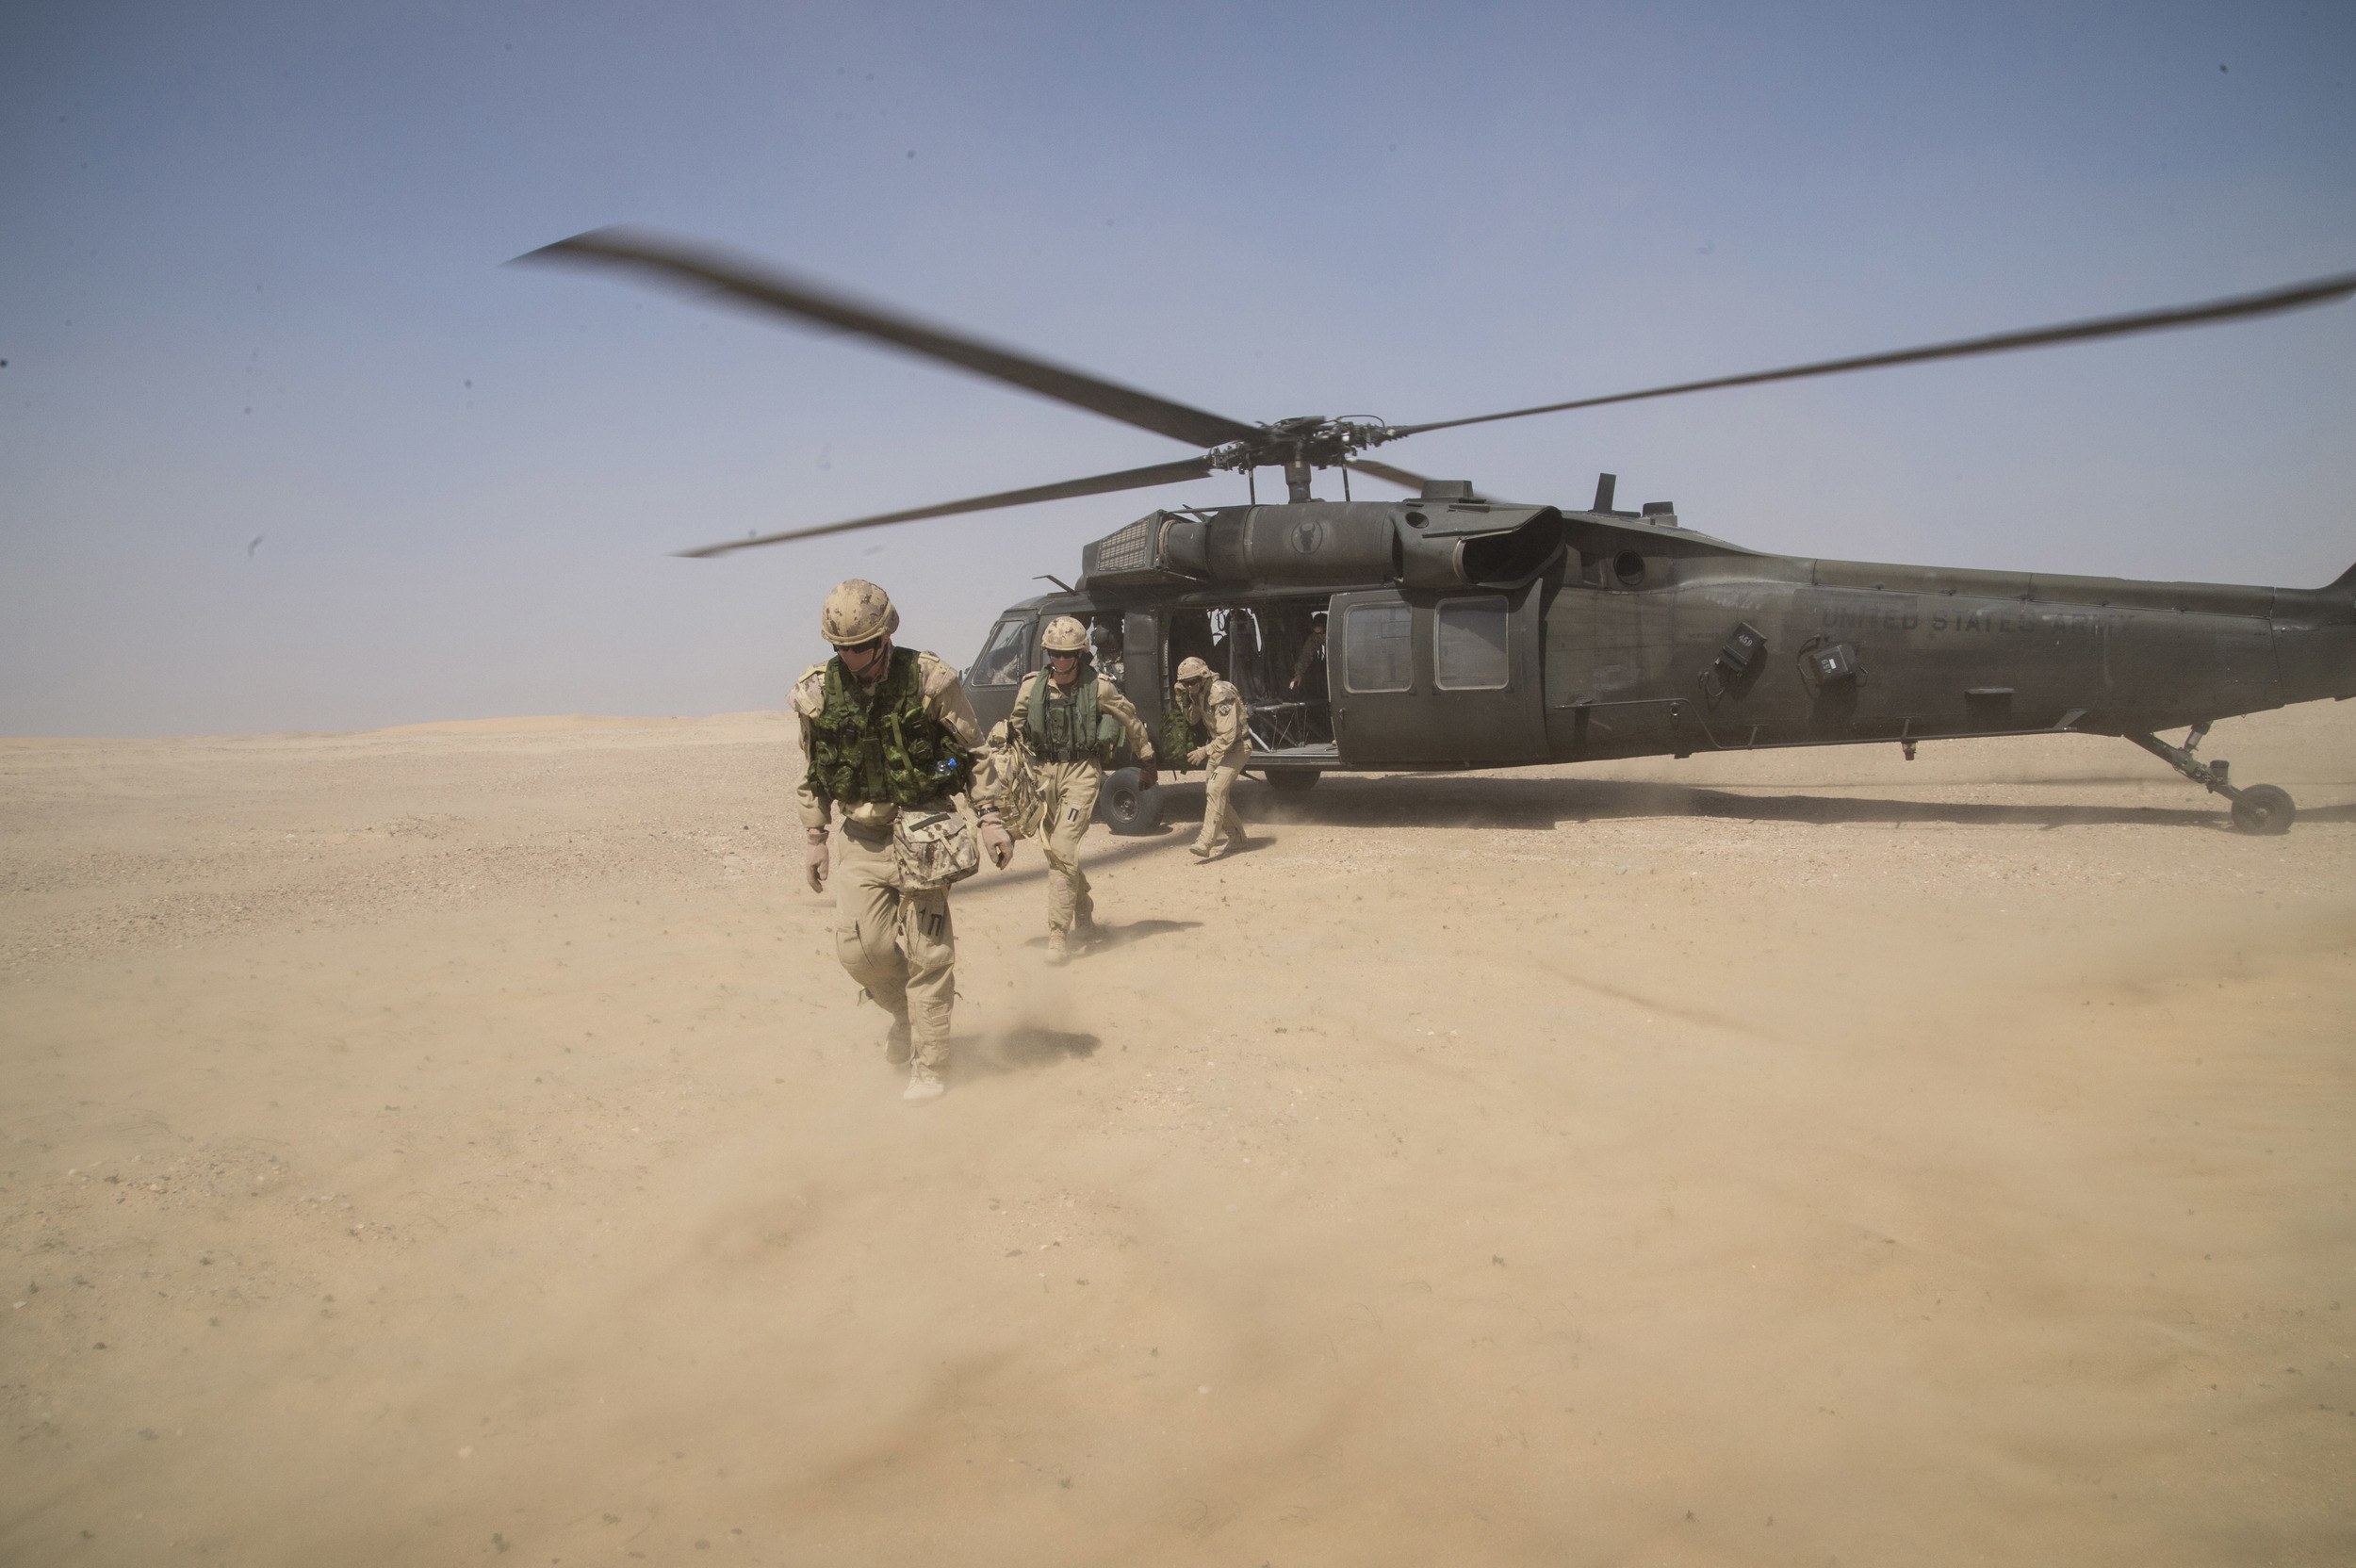 Royal Canadian Air Force members of Air Task Force-Iraq participate in the SHAMAL SERIALS, a combat search and rescue exercise held for personnel of the Middle East Stabilization Force, currently conducting operations against the Islamic State of Iraq and the Levant (ISIL) in a training area in Kuwait on March 16, 2015. (Combat Camera).